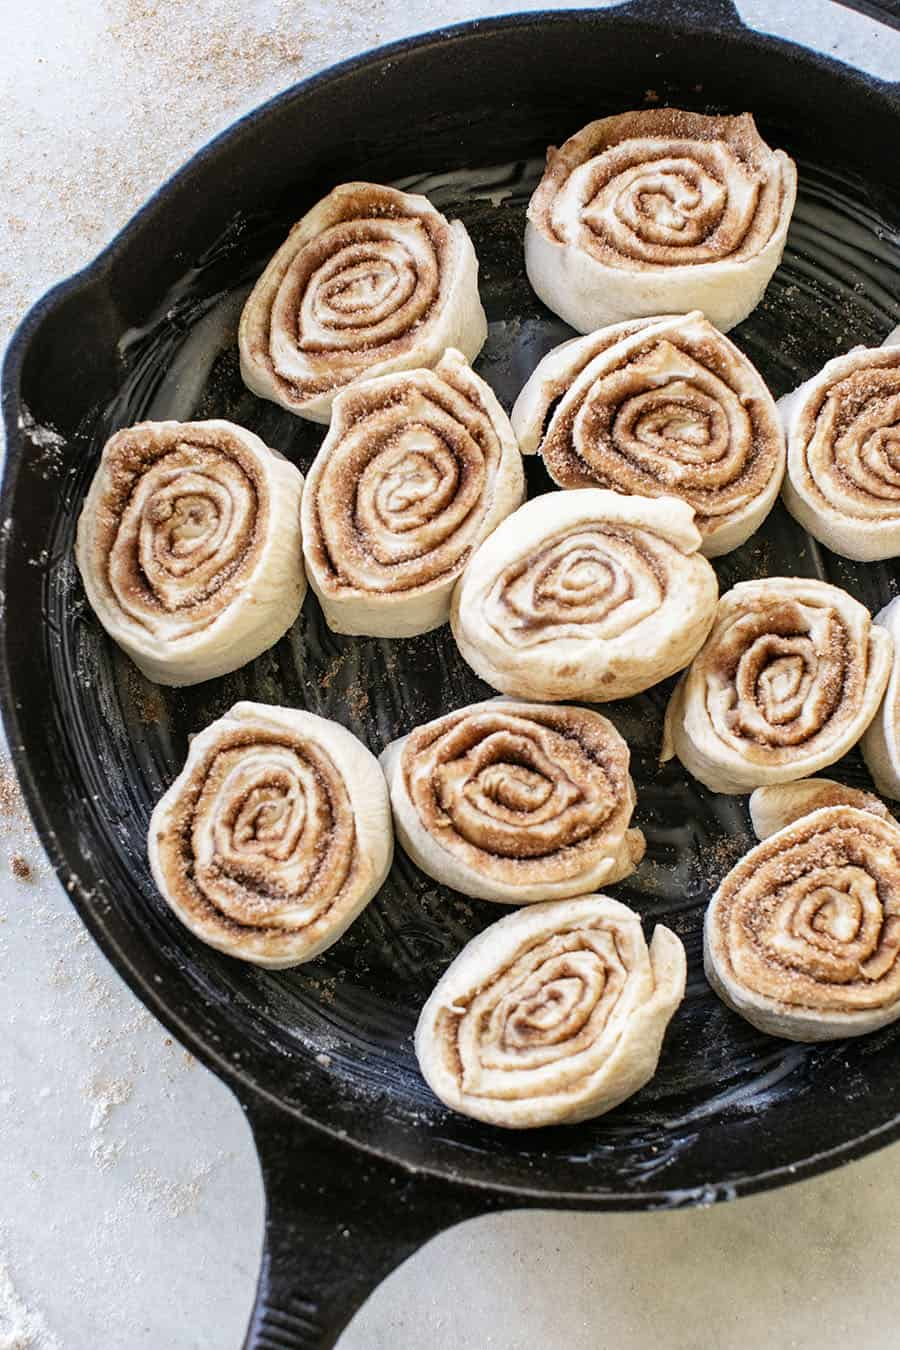 Cinnamon rolls in a cast iron skillet